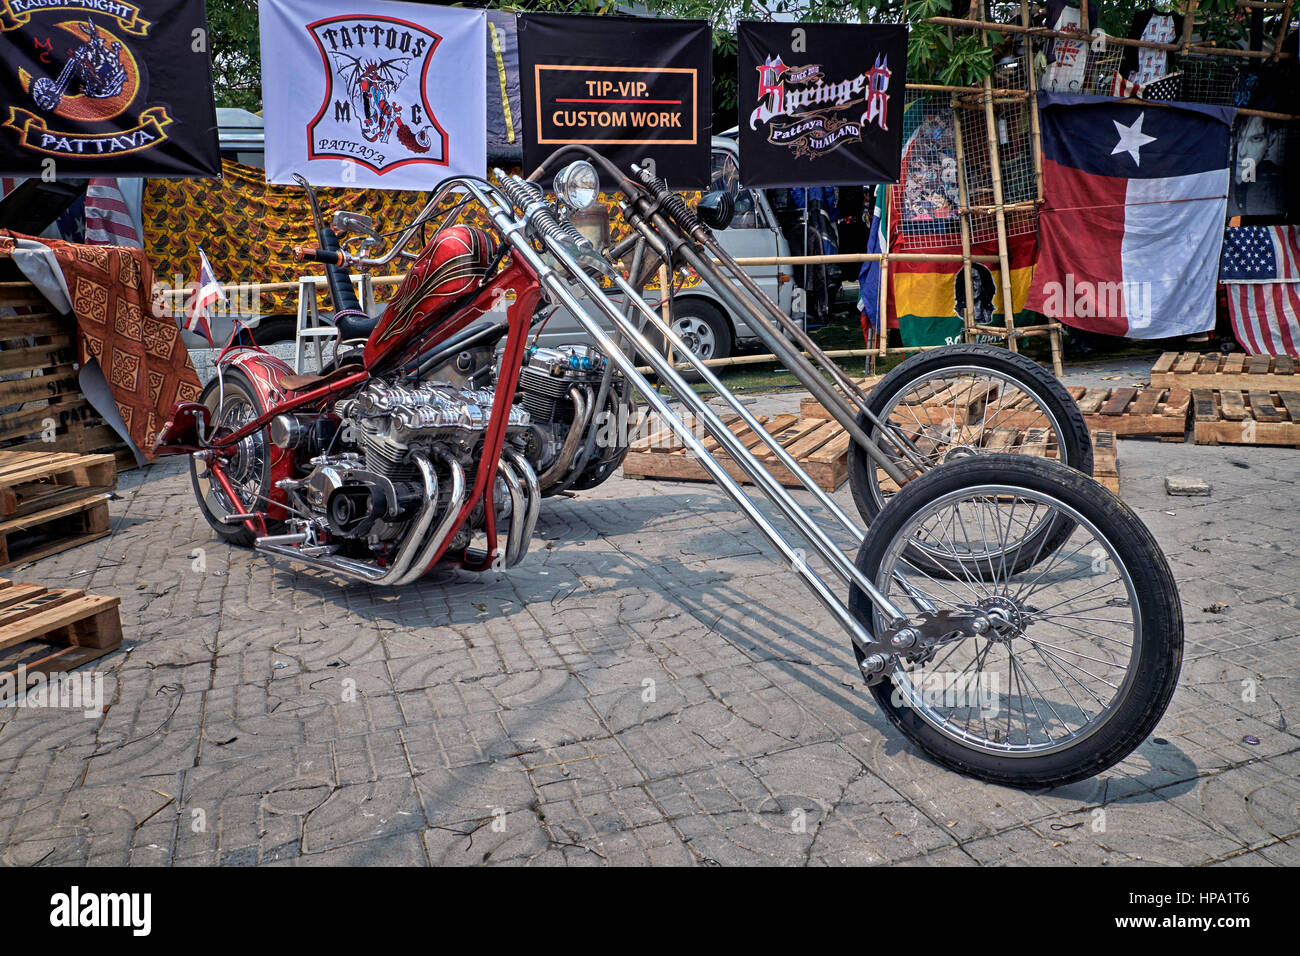 Harley Davidson modified and customised low rider chopper motorcycle - Stock Image